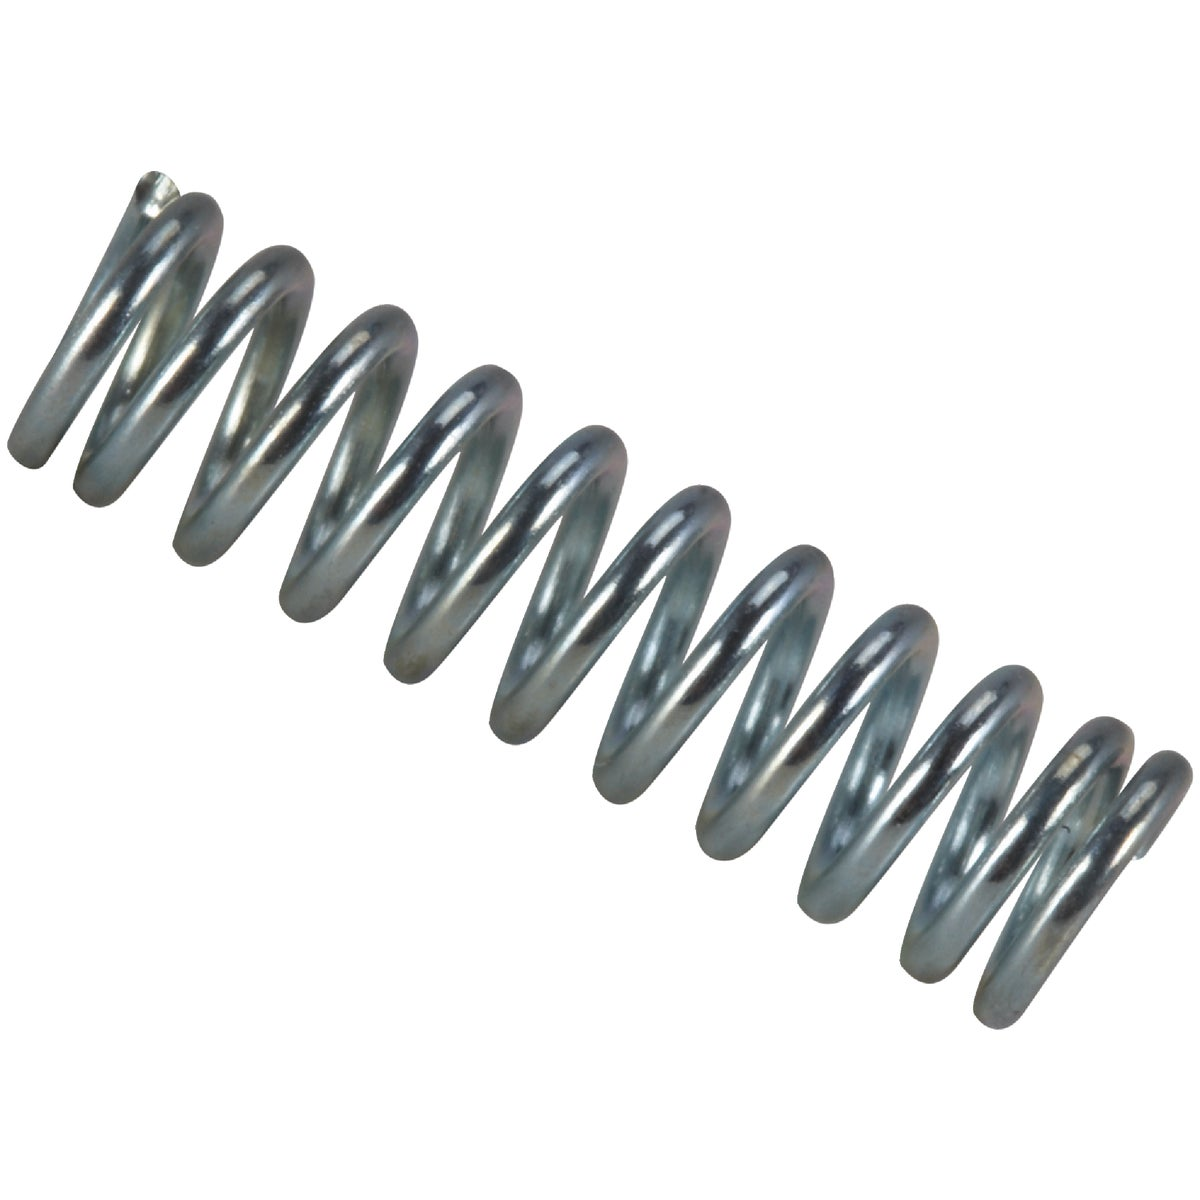 COMPRESSION SPRING - C-878 by Century Spring Corp